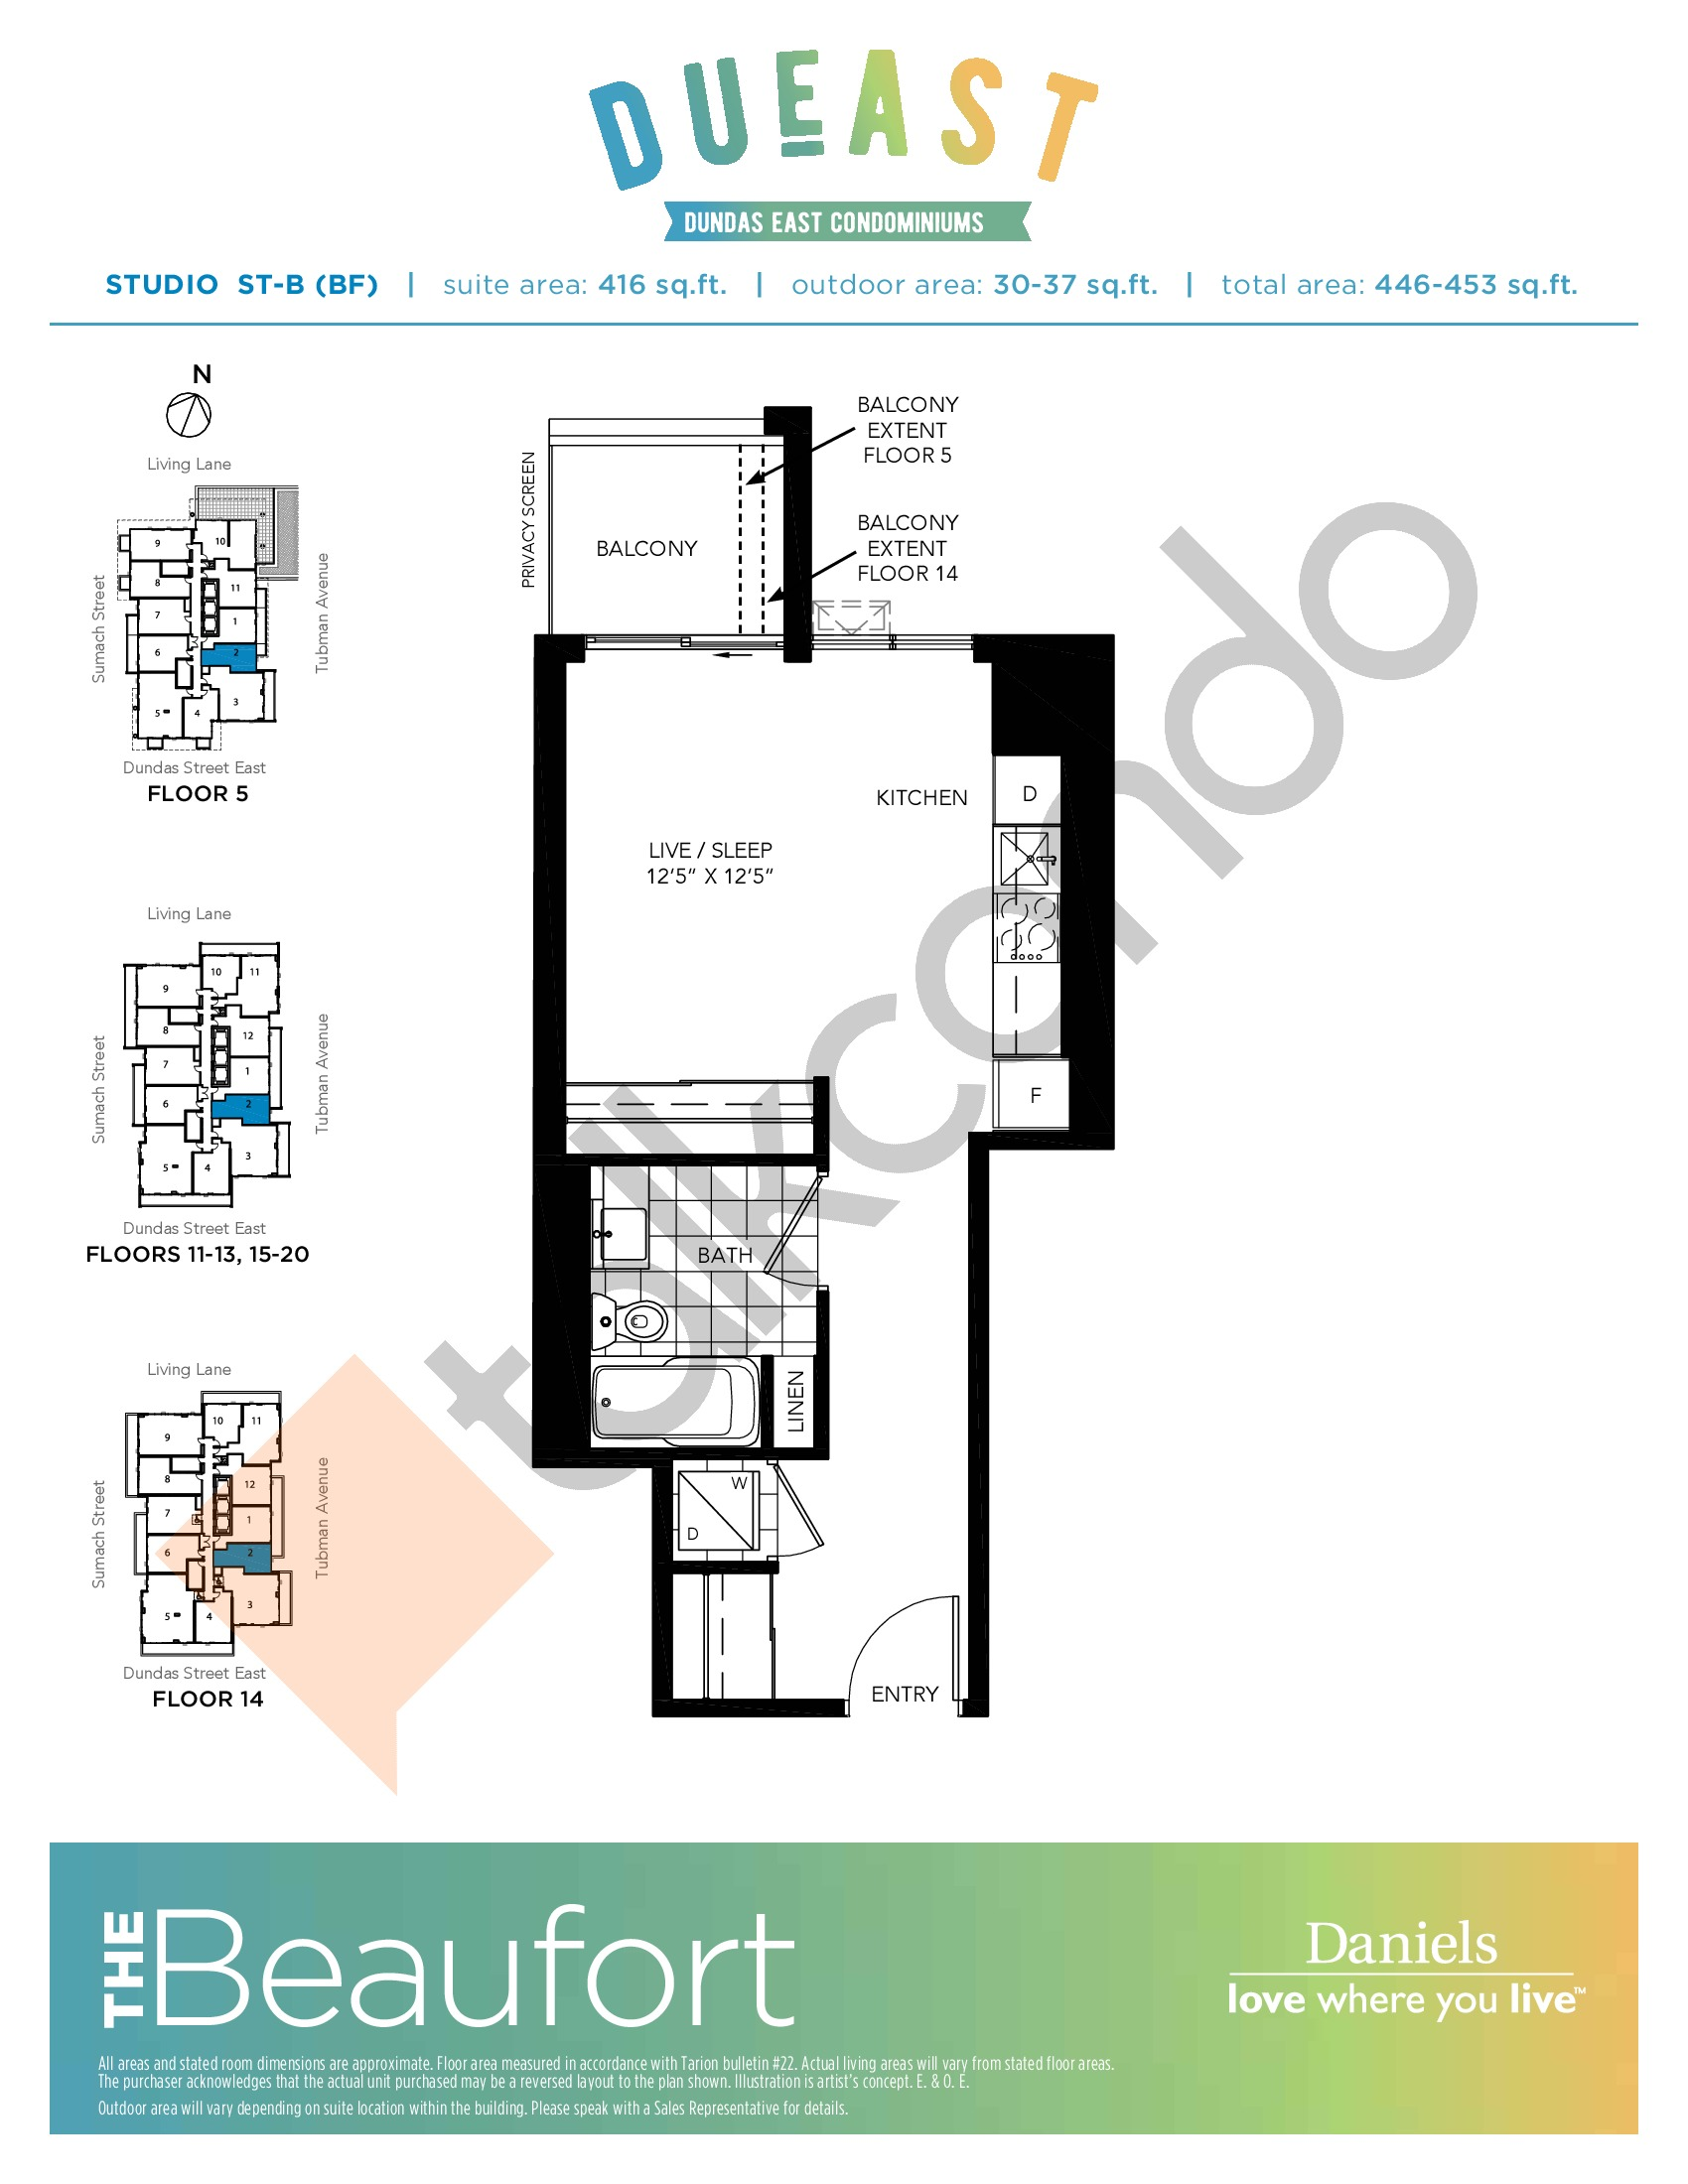 The Beaufort ST-B (BF) Floor Plan at DuEast Condos - 416 sq.ft